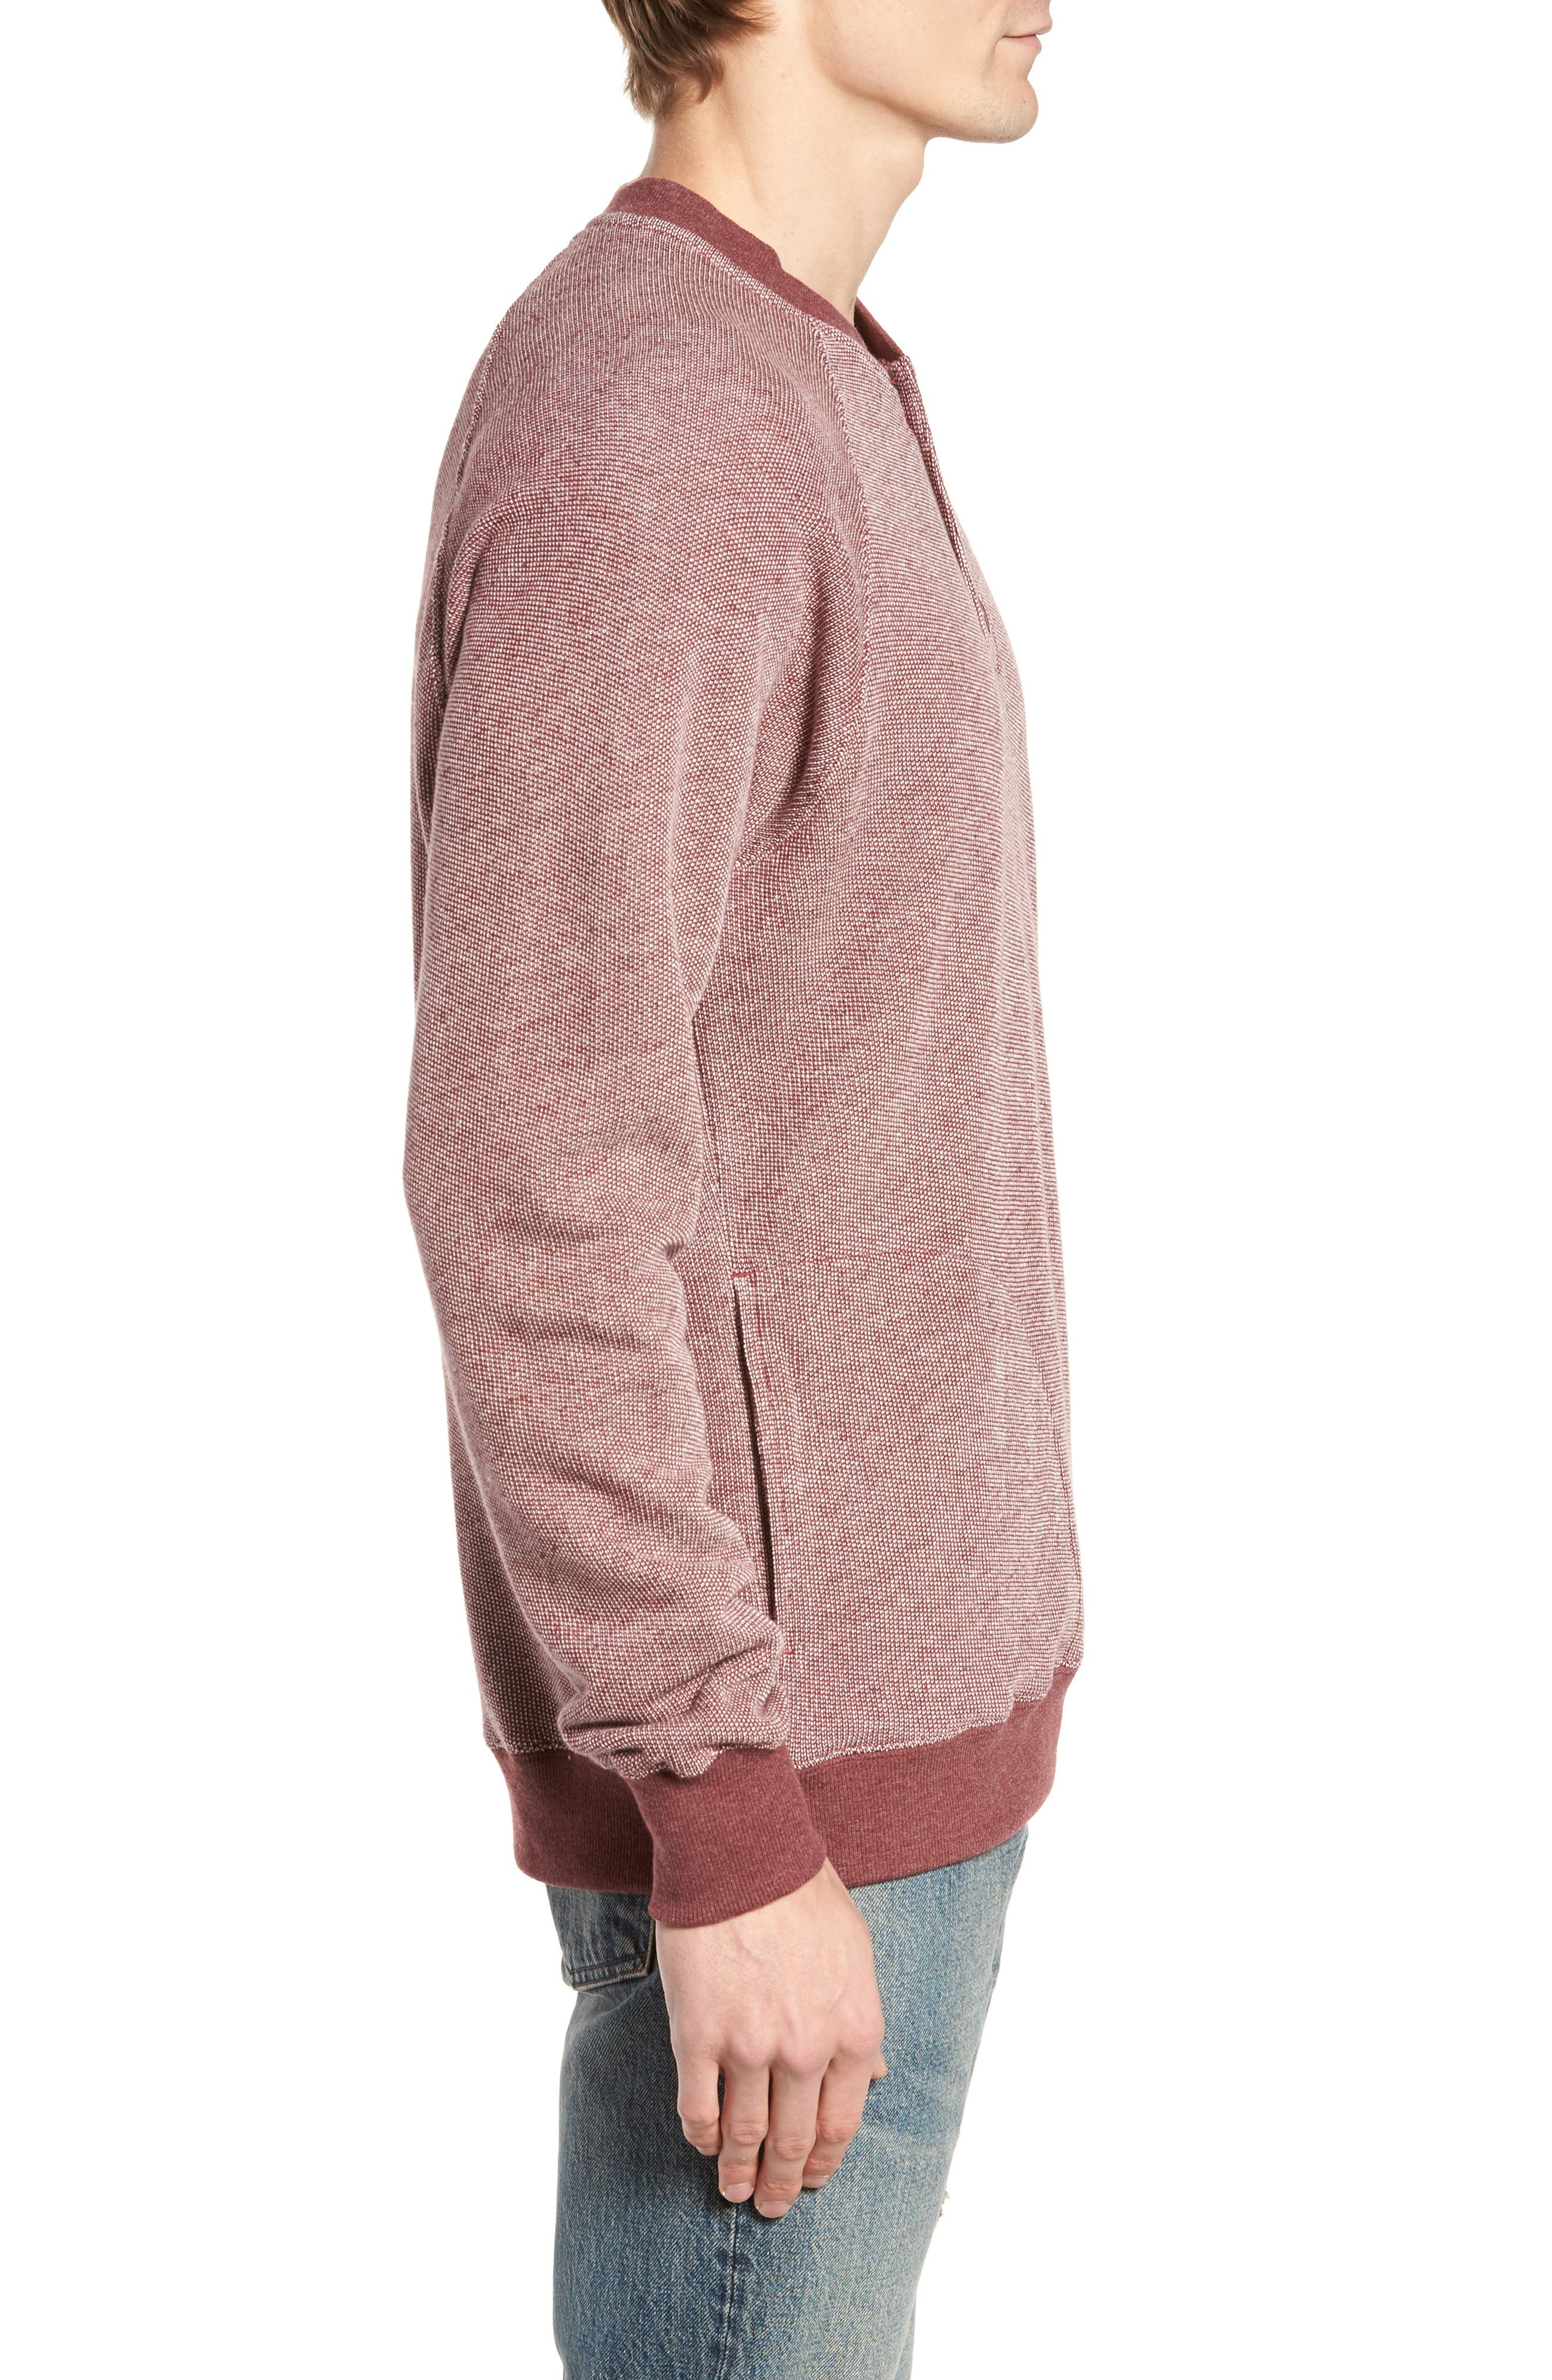 Capo Henley Pullover,                             Alternate thumbnail 3, color,                             Tawny Port